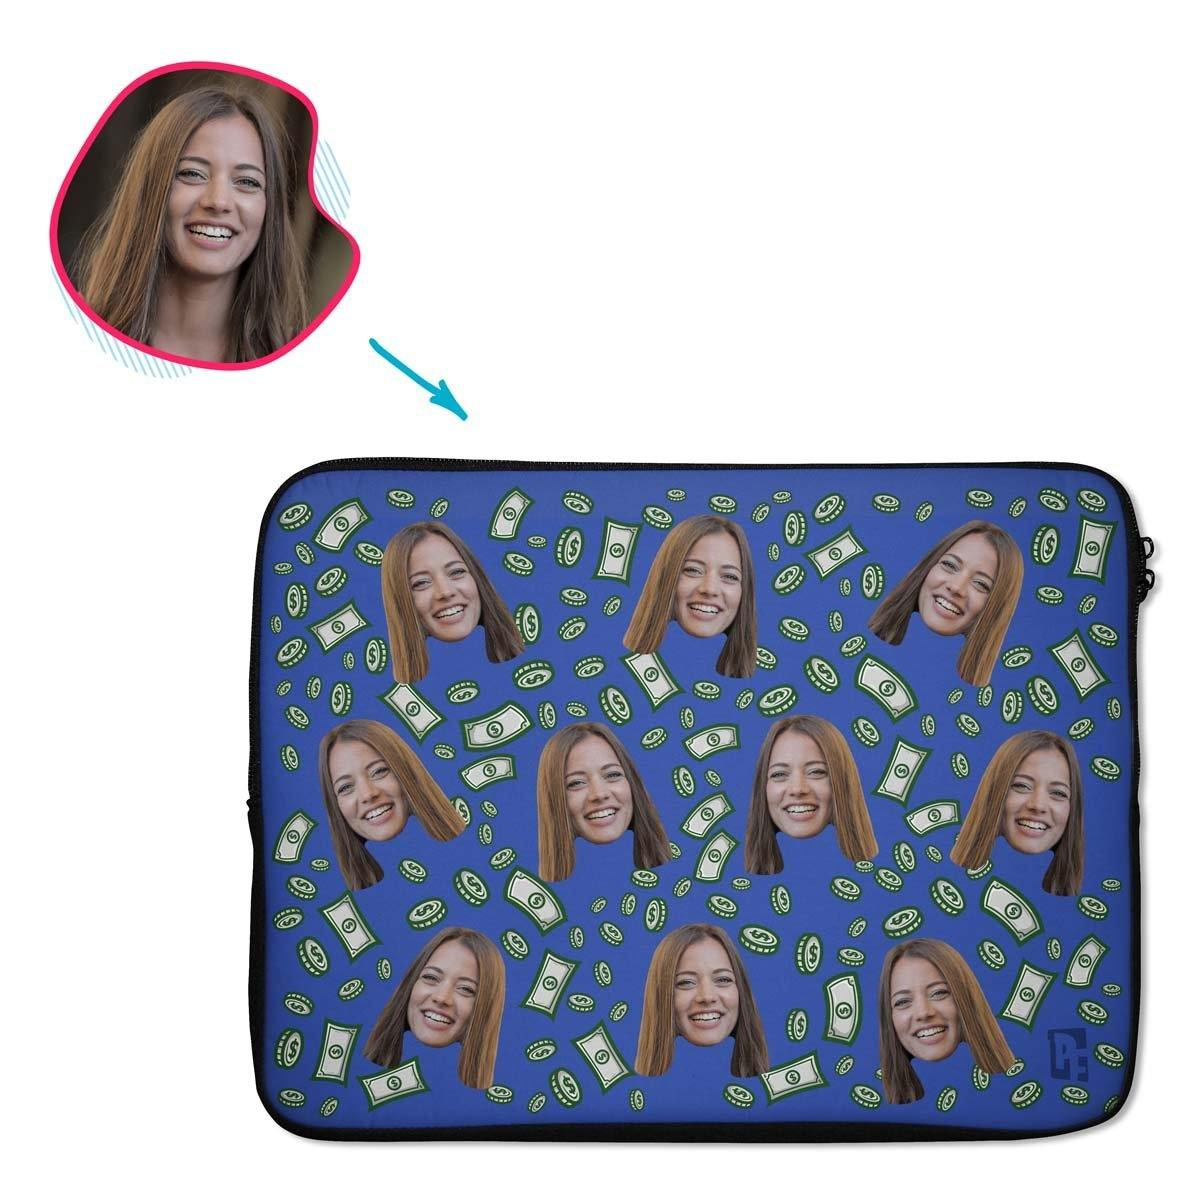 darkblue Money laptop sleeve personalized with photo of face printed on them